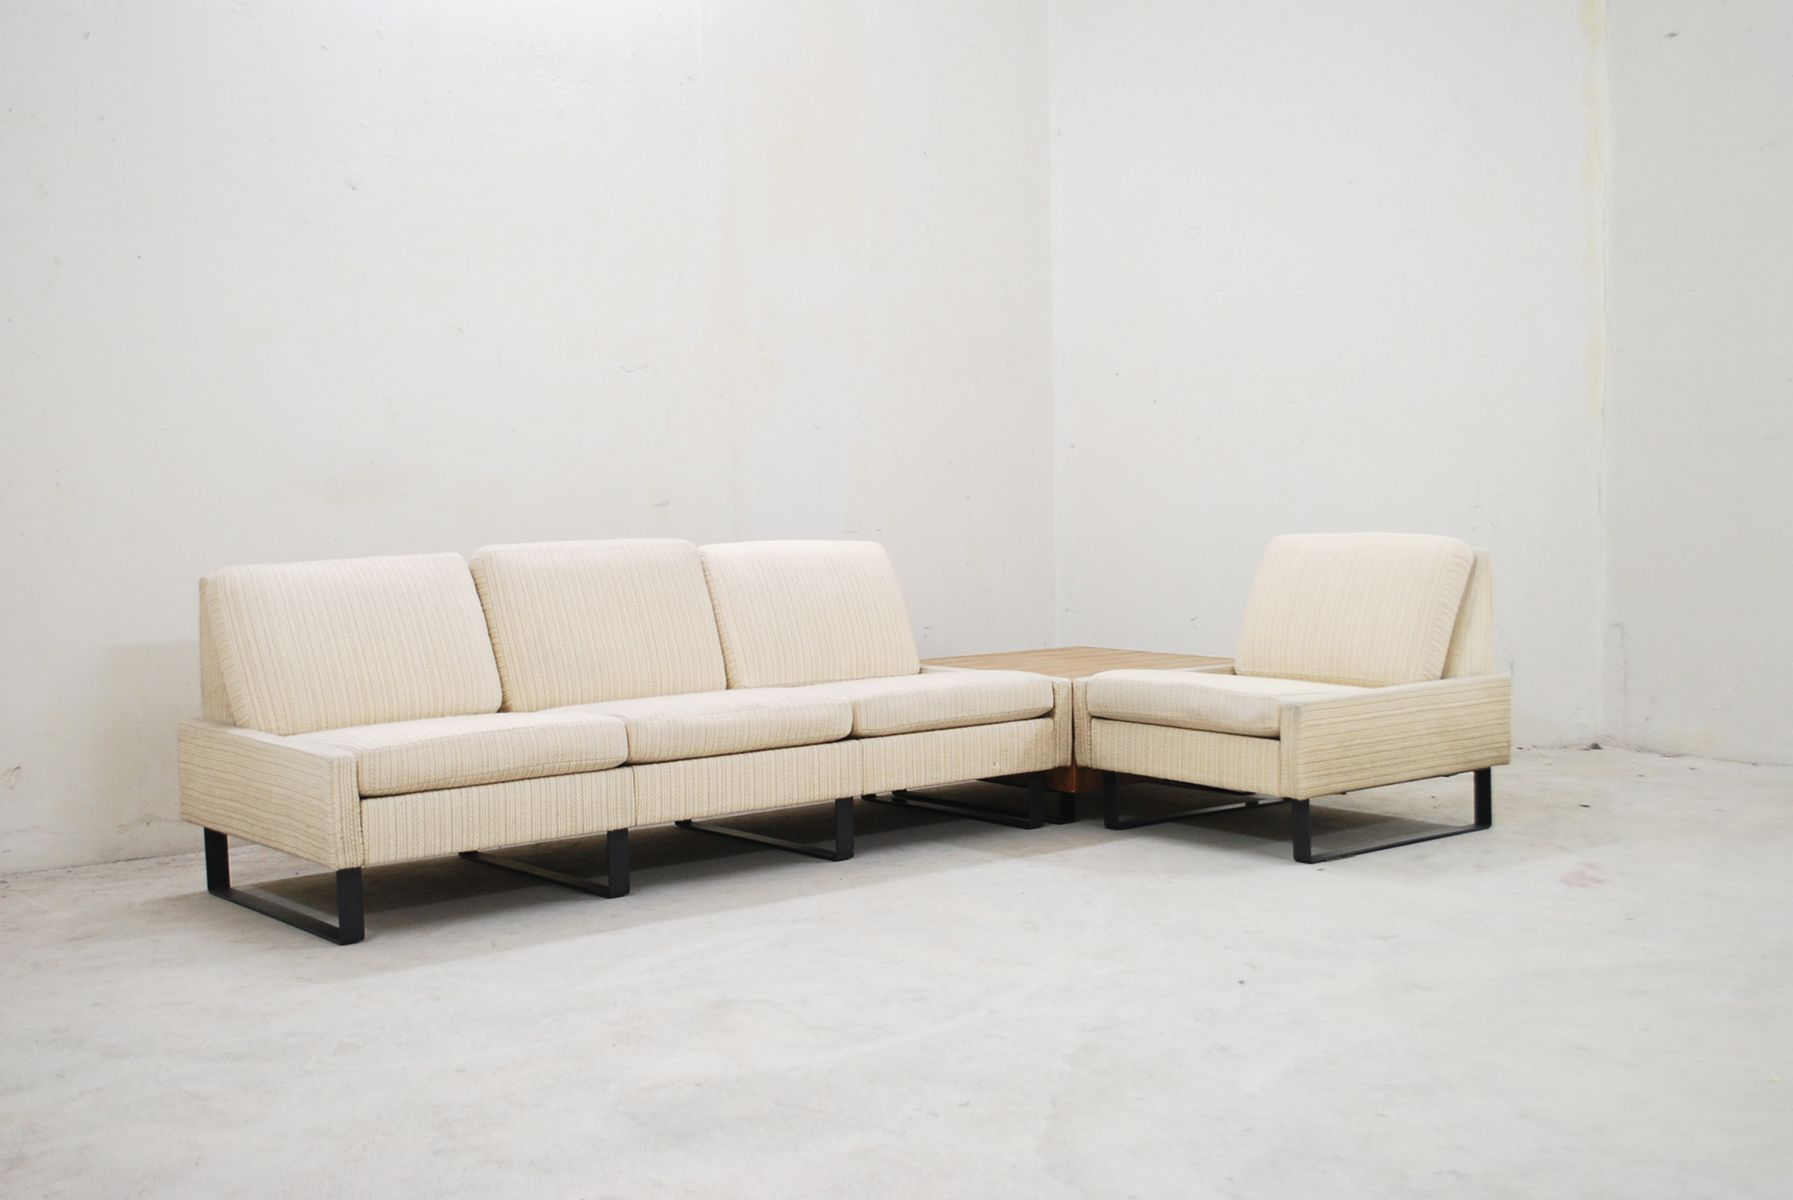 vintage conseta creme sofa ensemble from cor for sale at pamono. Black Bedroom Furniture Sets. Home Design Ideas